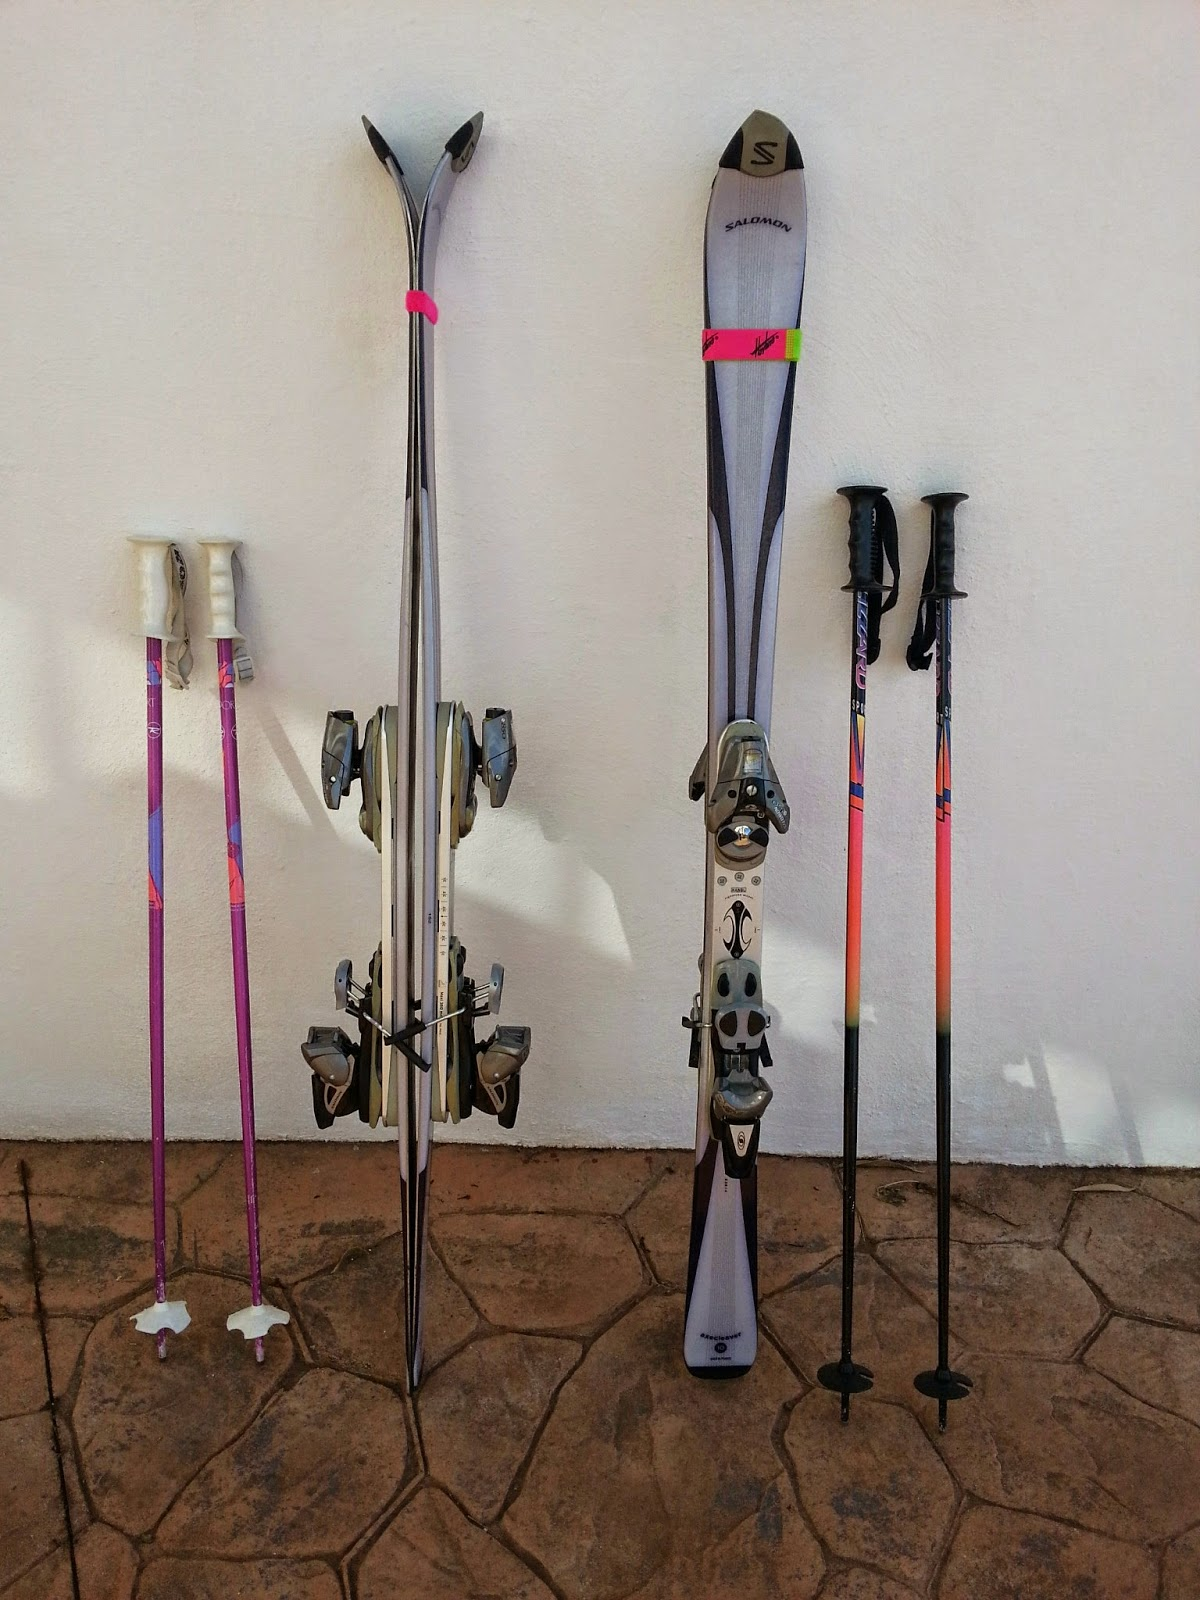 Digame for sale two pairs of salomon axe cleaver skis